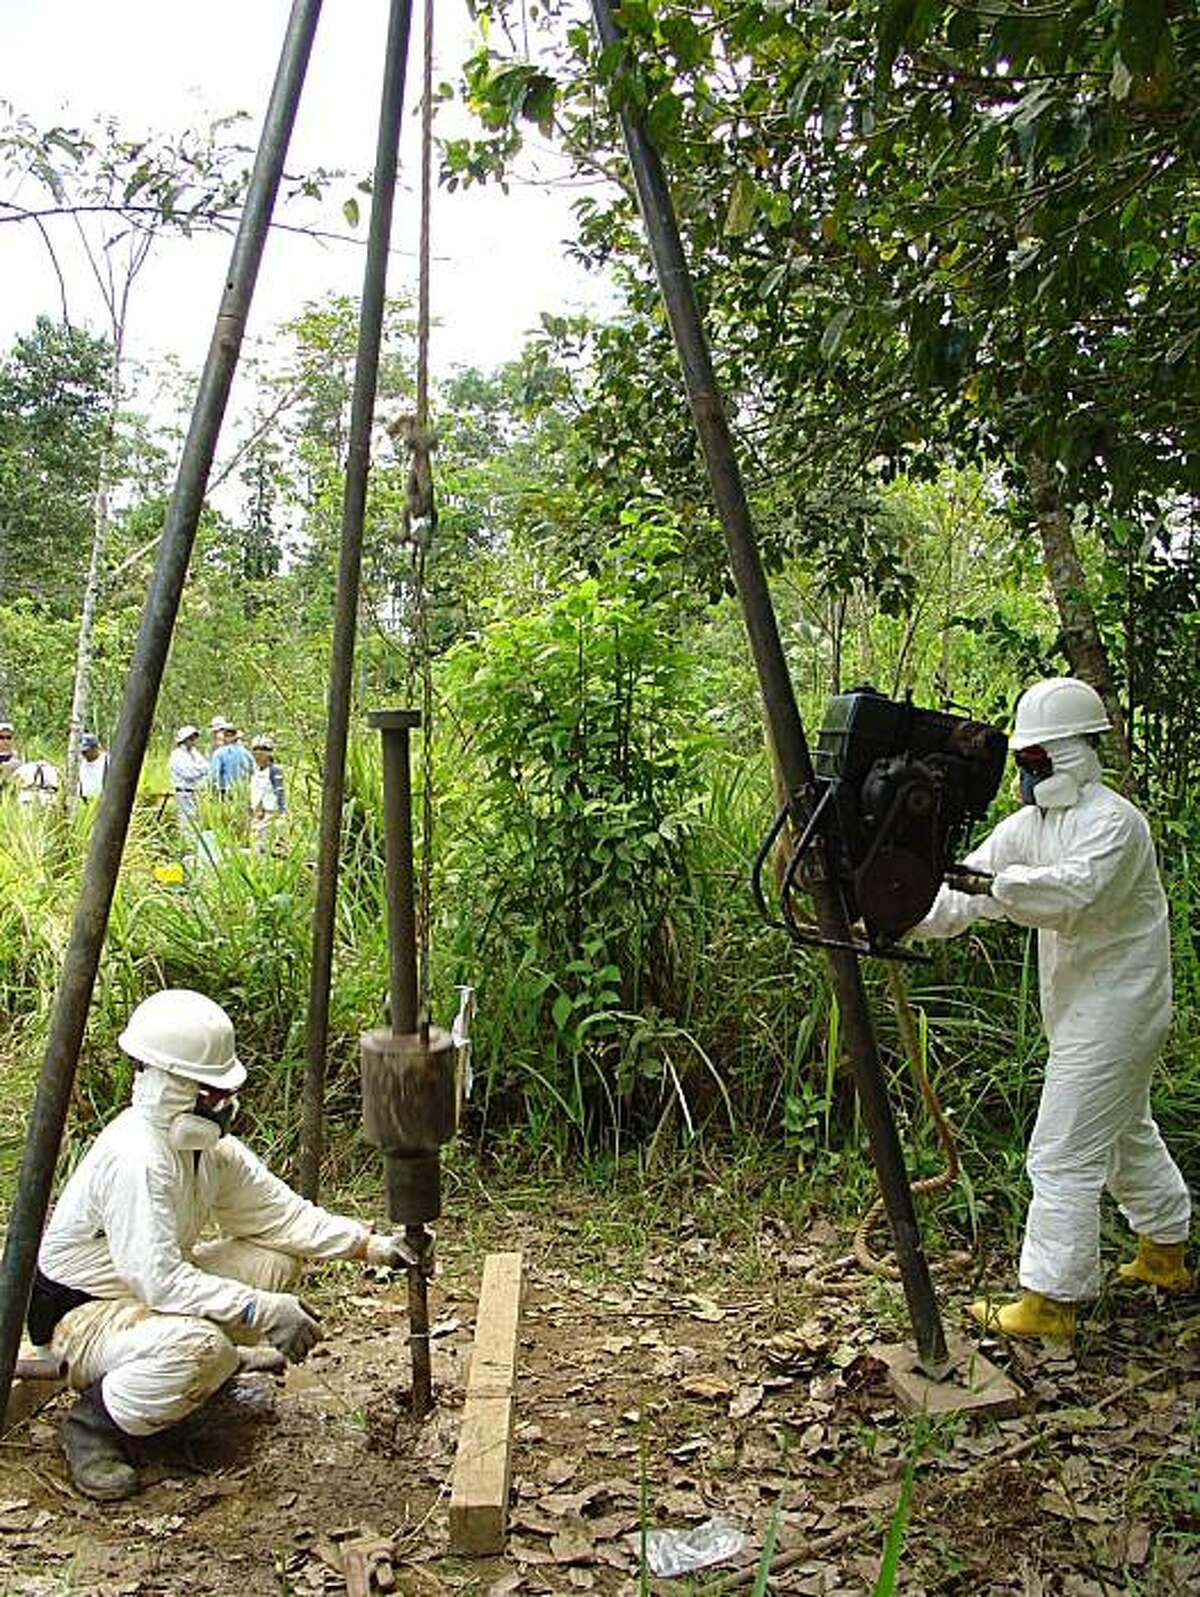 Workers take soil samples at a former oil drilling site in the Ecuadoran Amazon, looking for contamination as part of a lawsuit against Chevron Corp.